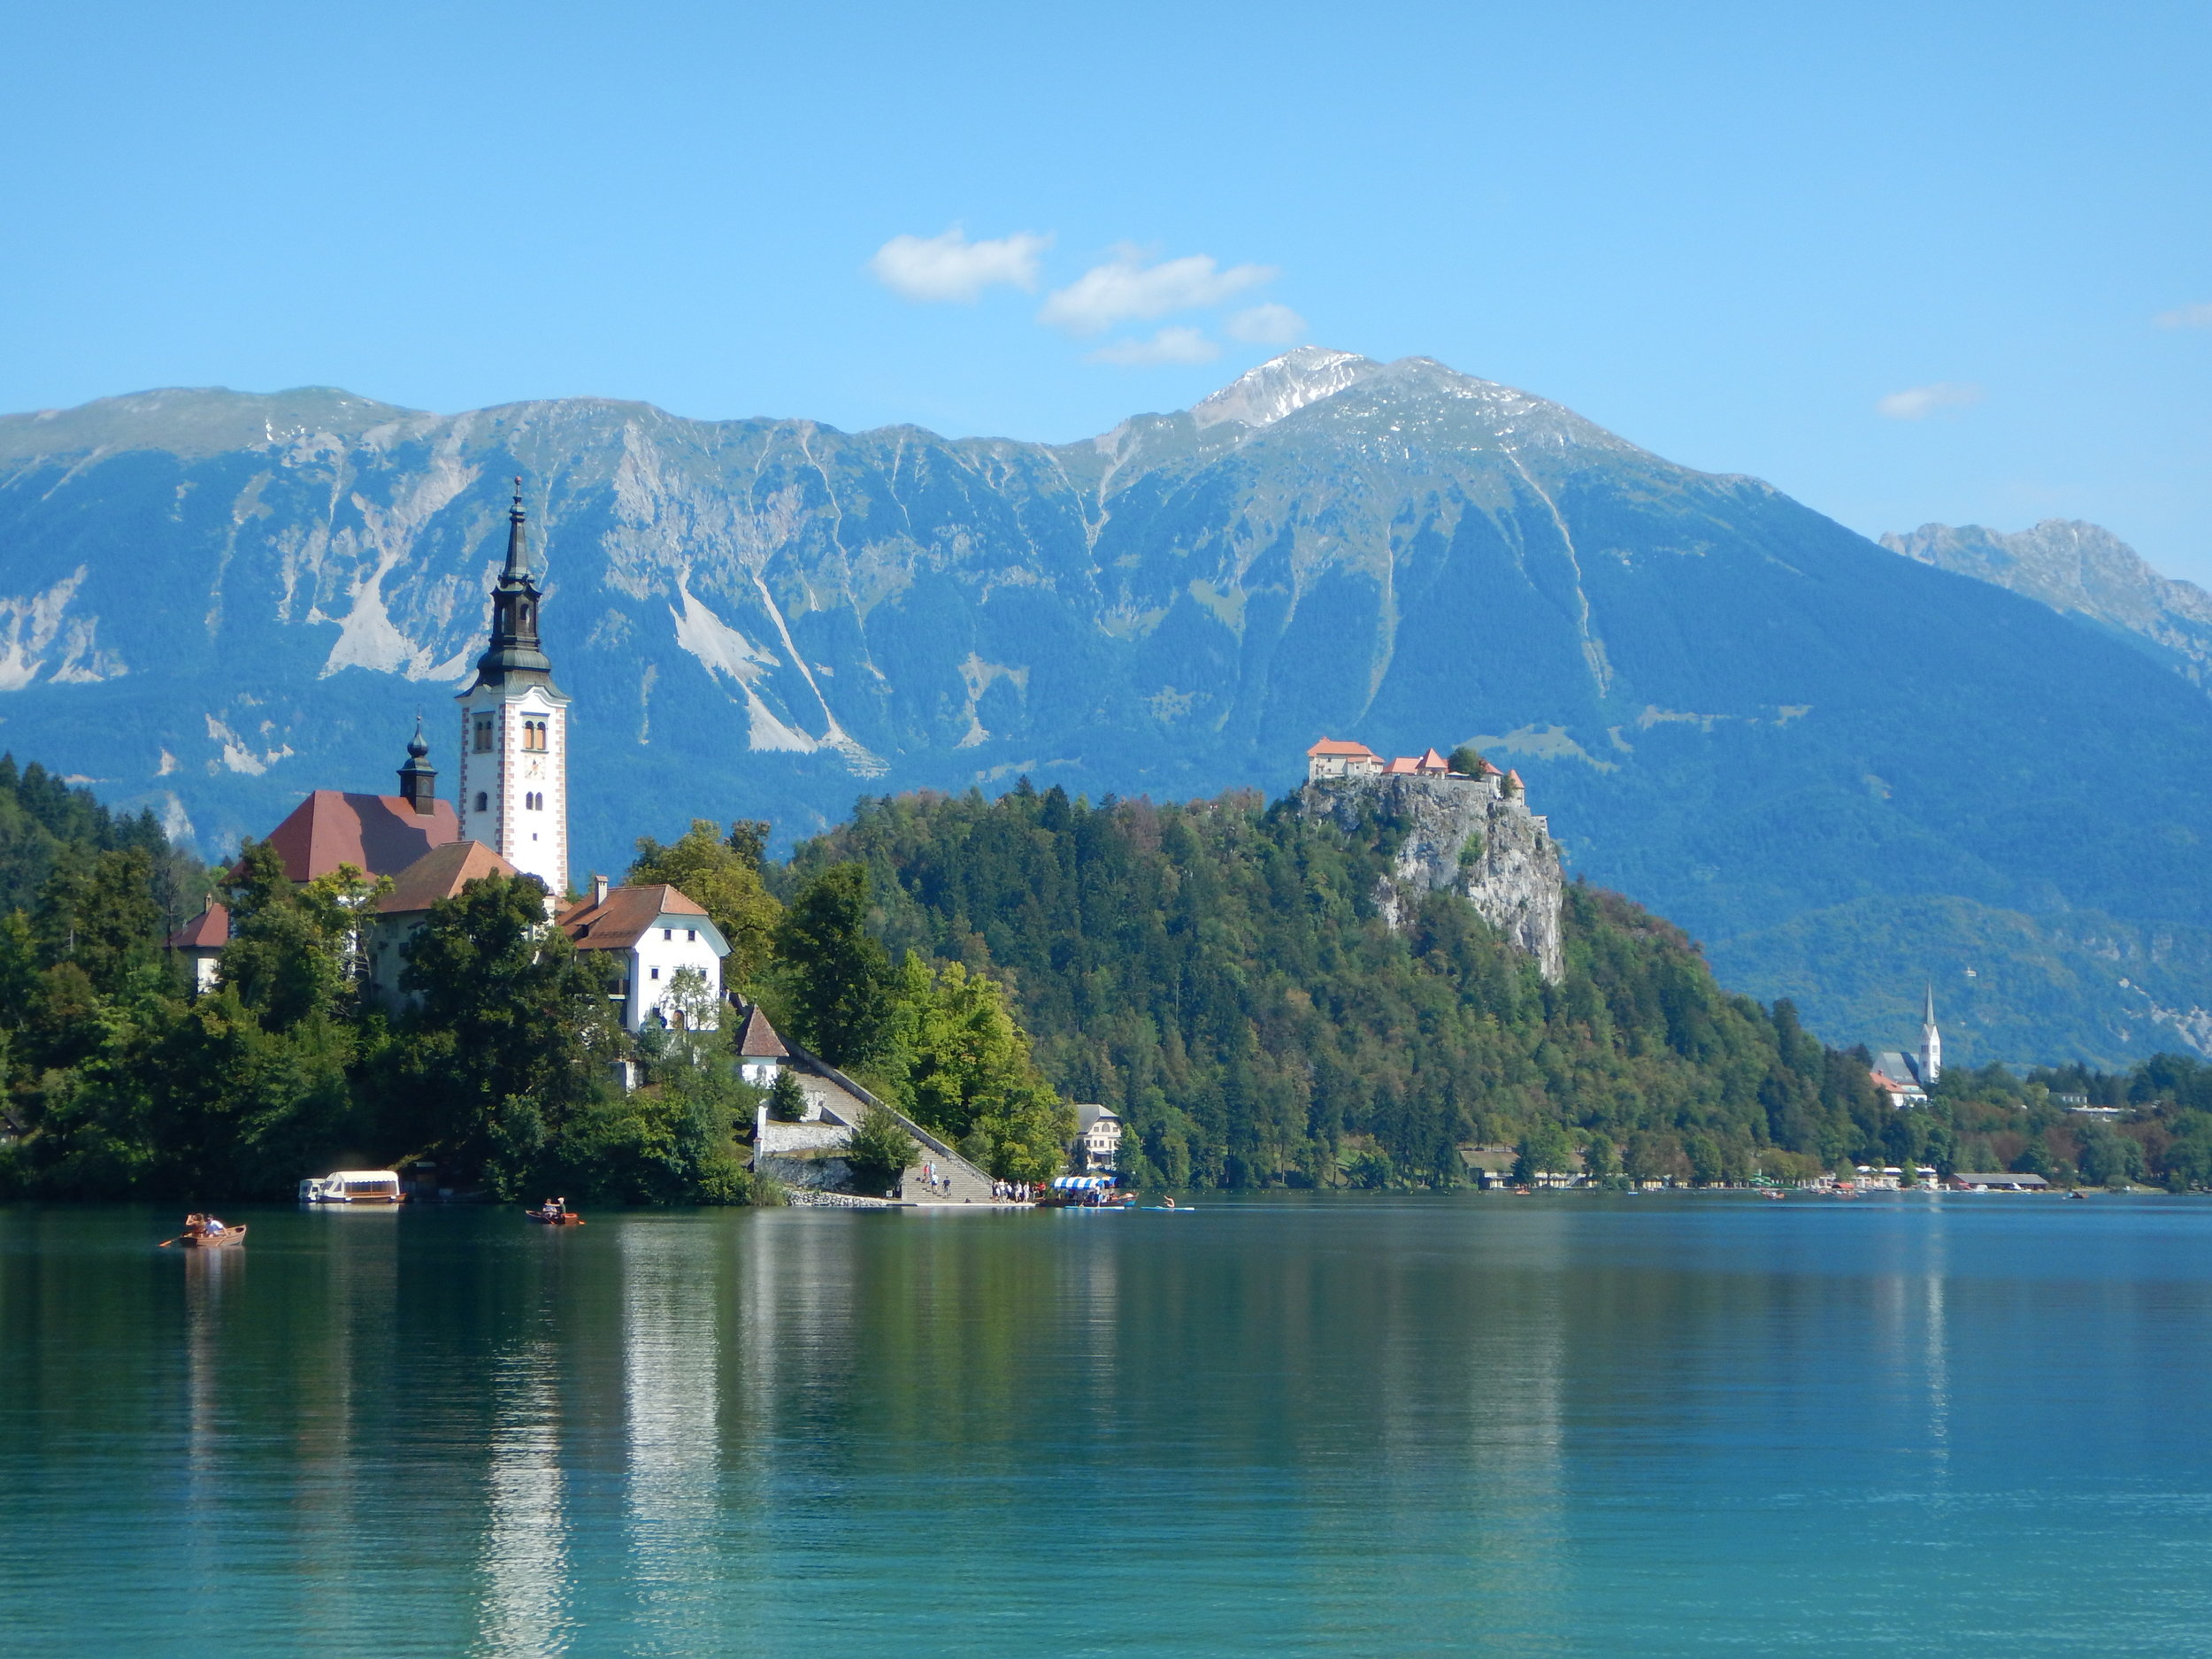 The view of the castle and church, from the south side of Lake Bled.